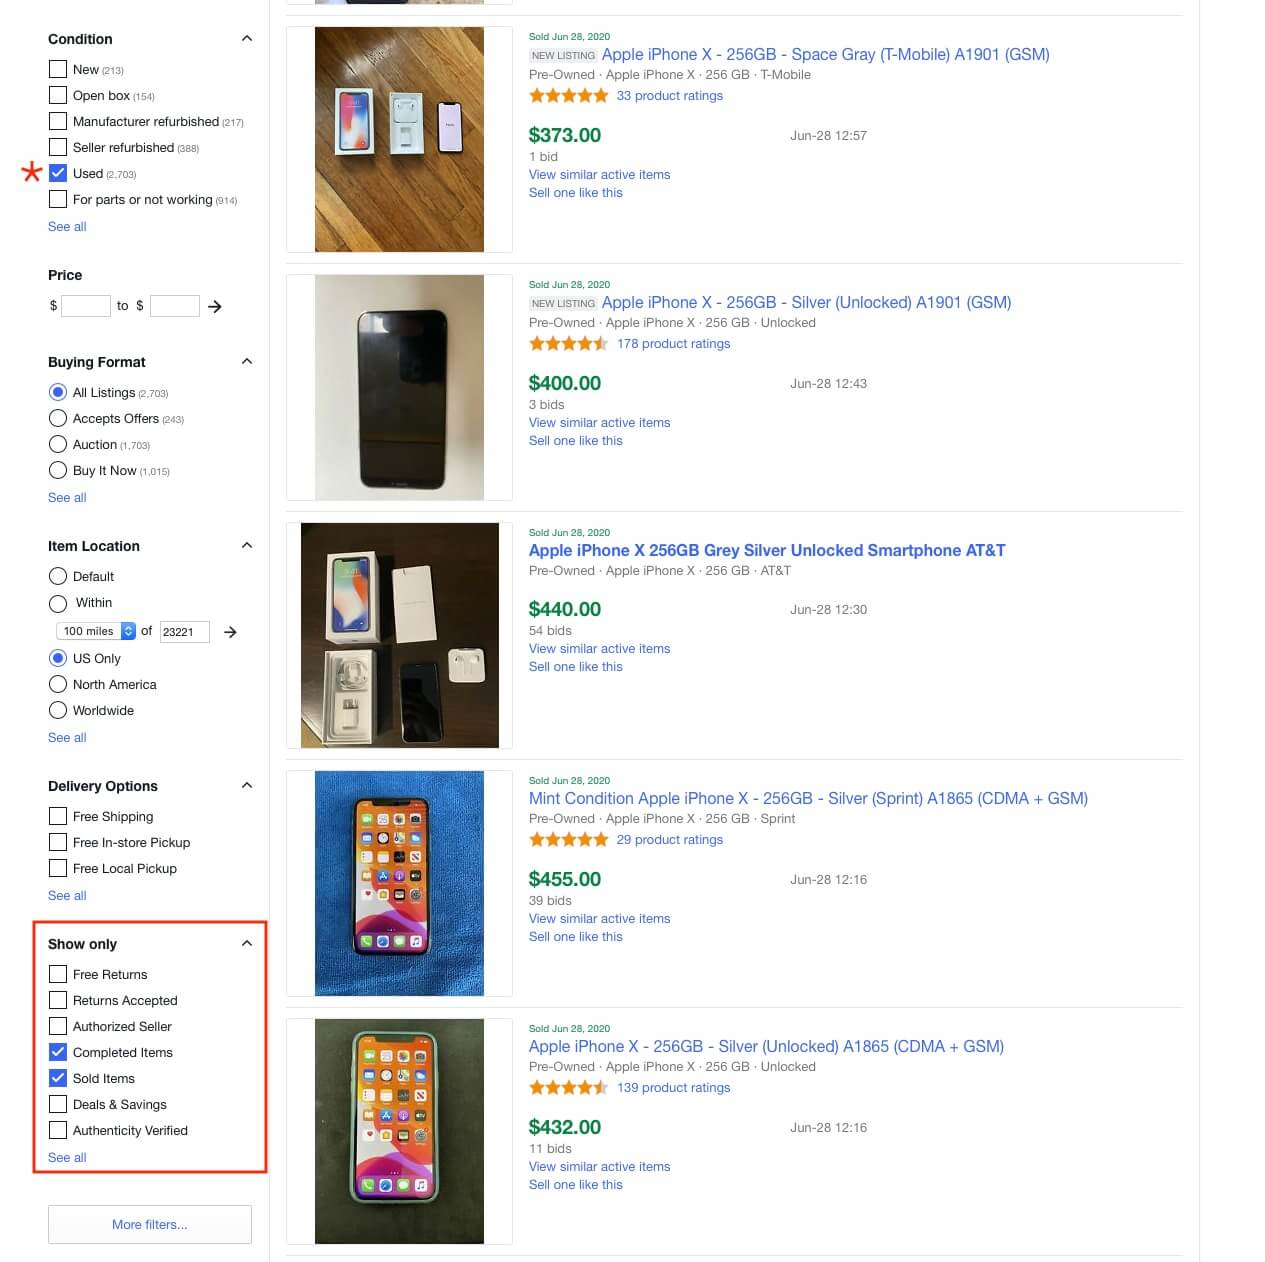 eBay has always been a great website to sell stuff locally; it has some very useful pricing data as well! The selected filters on the left side let you see completed and more specifically successfully sold listings for your search term - you can even add additional filters like condition and location.